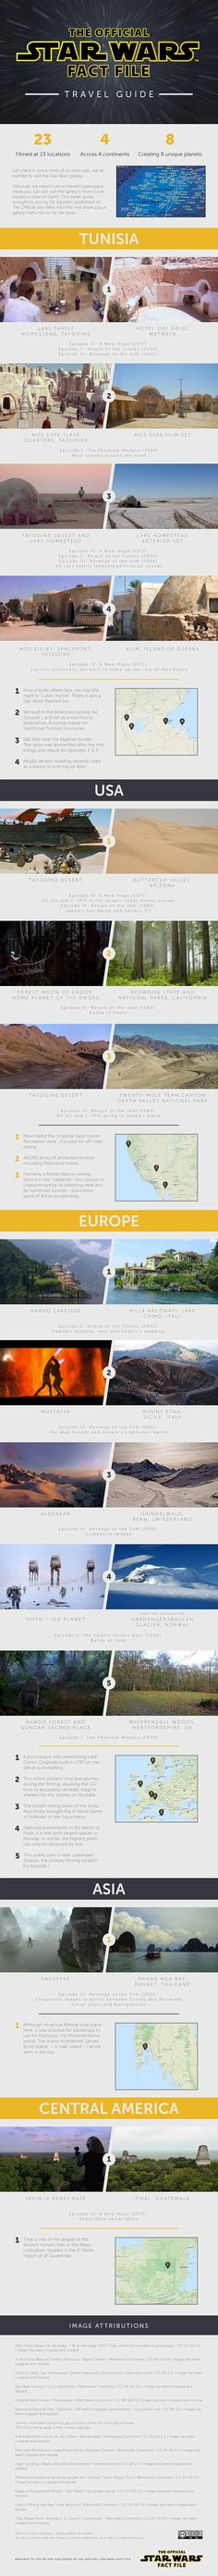 Star Wars Travel Guide [Infographic]